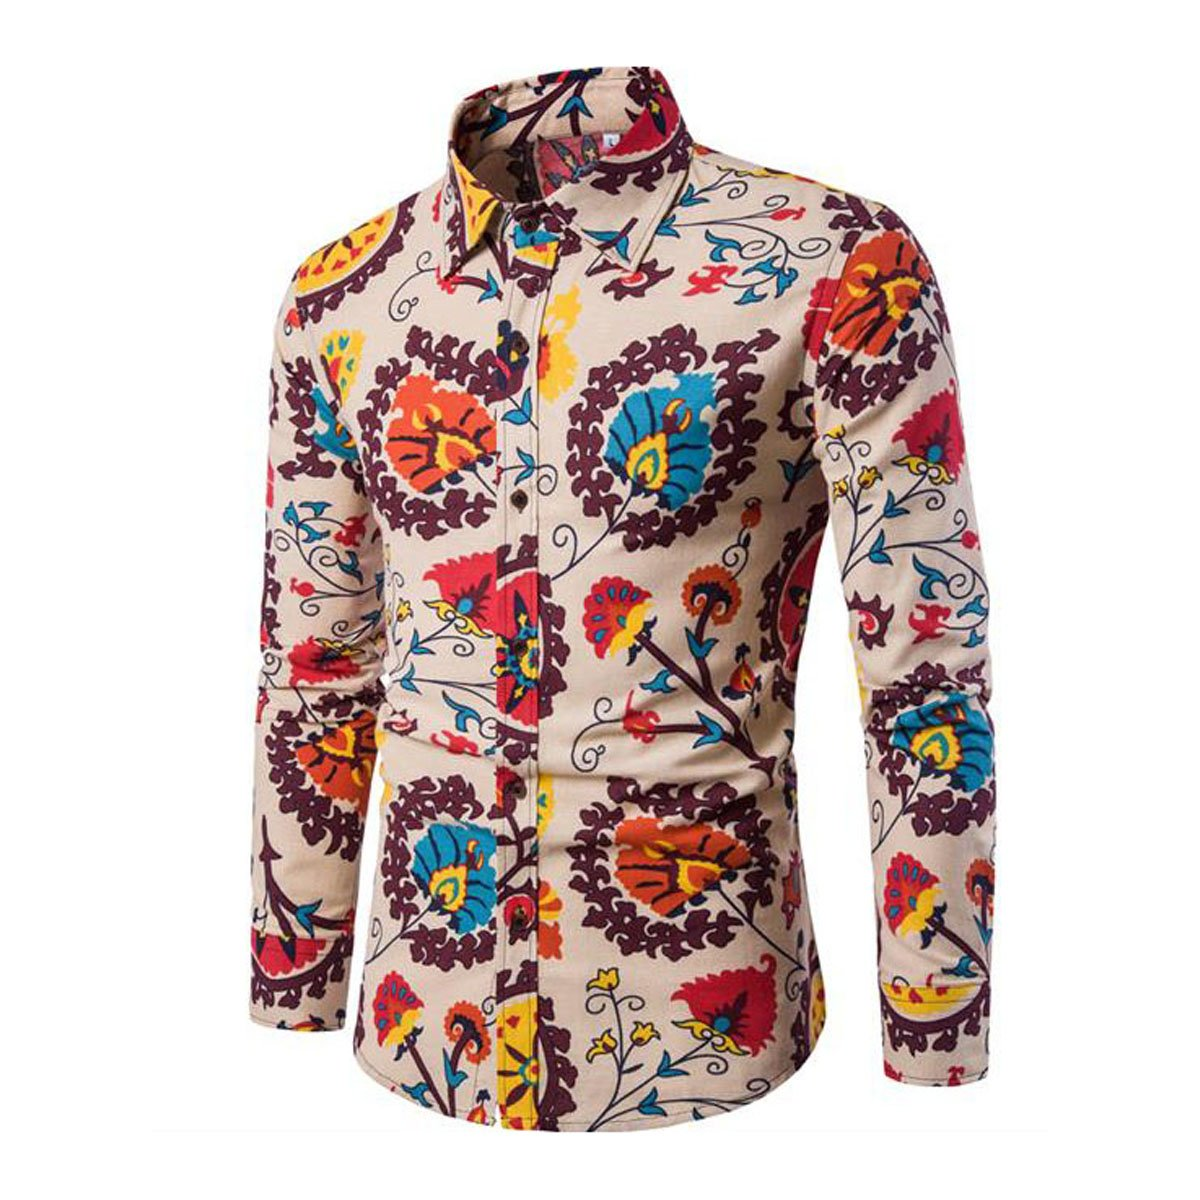 Mens Vintage Shirts – Casual, Dress, T-shirts, Polos Allthemen Mens Dress Shirts Long Sleeve Funky Printed Linen Shirt Casual Shirt Fancy Floral Tops Unique Pattern £15.99 AT vintagedancer.com